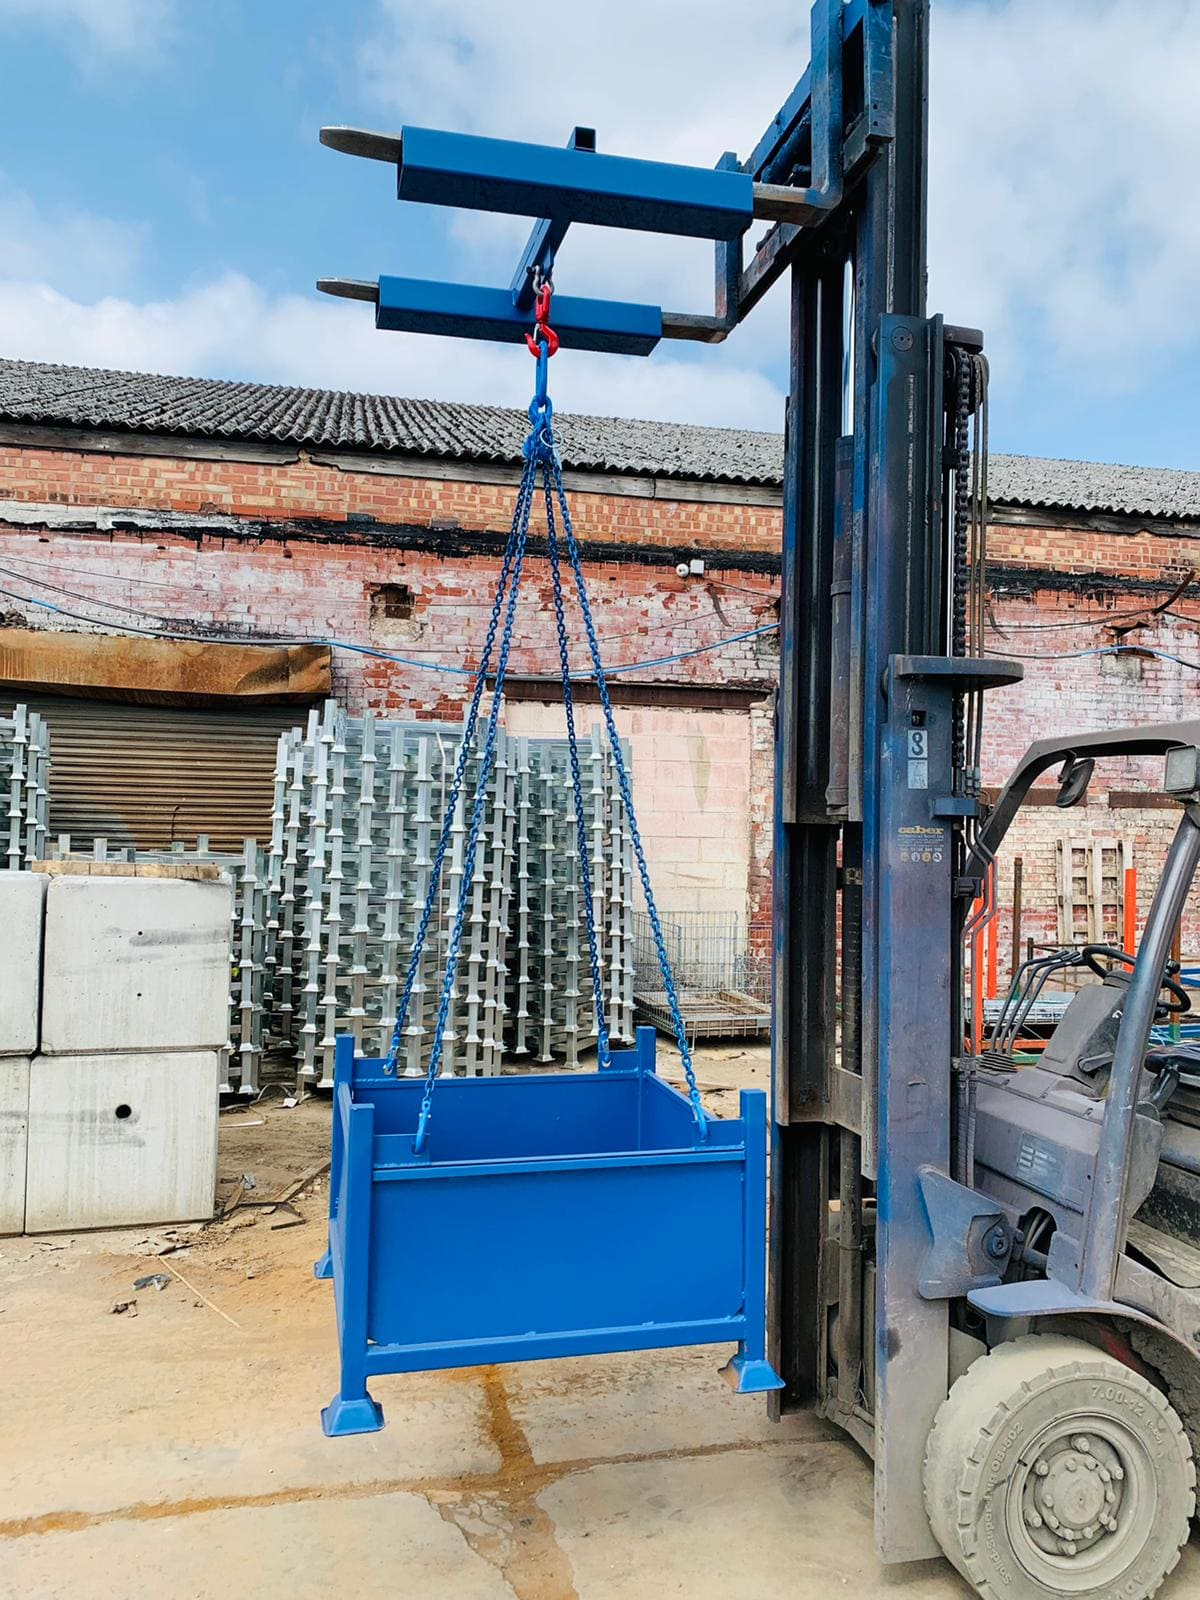 Image of stillage being lifted by forklift crane